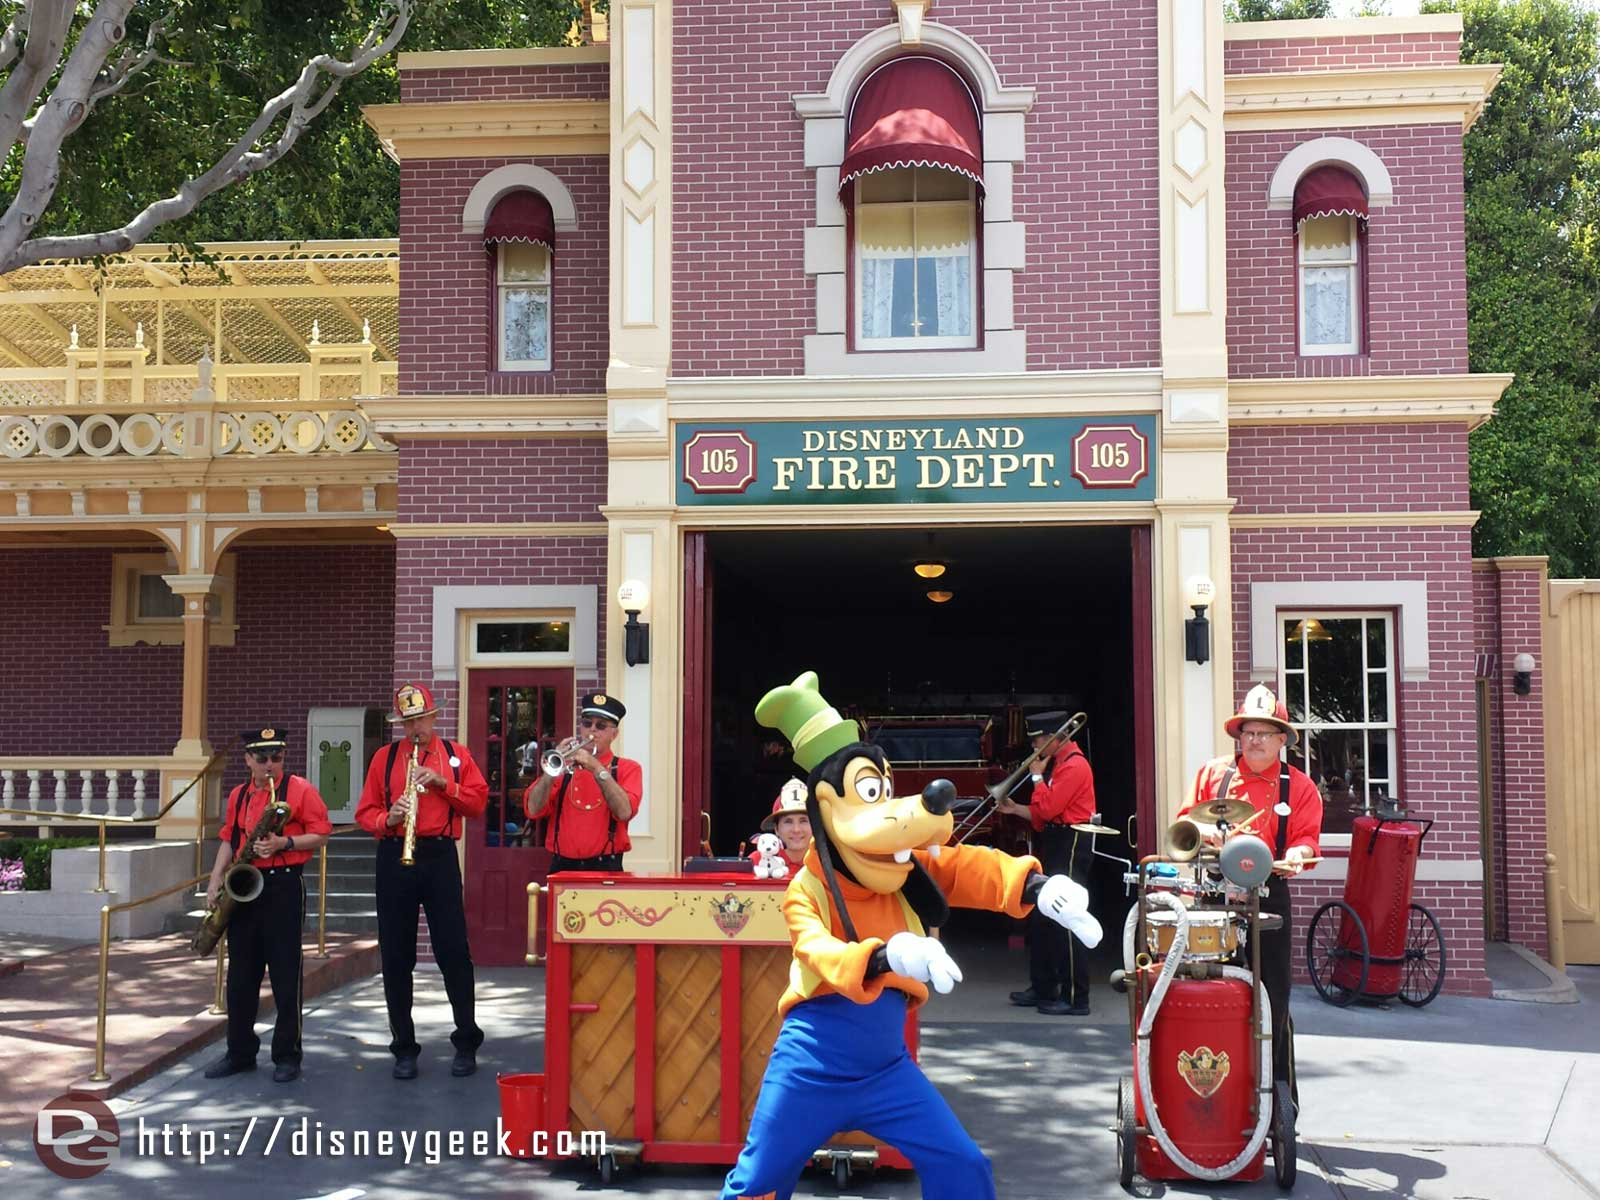 Goofy performing with the Hook and Ladder Company #Disneyland Main Street USA